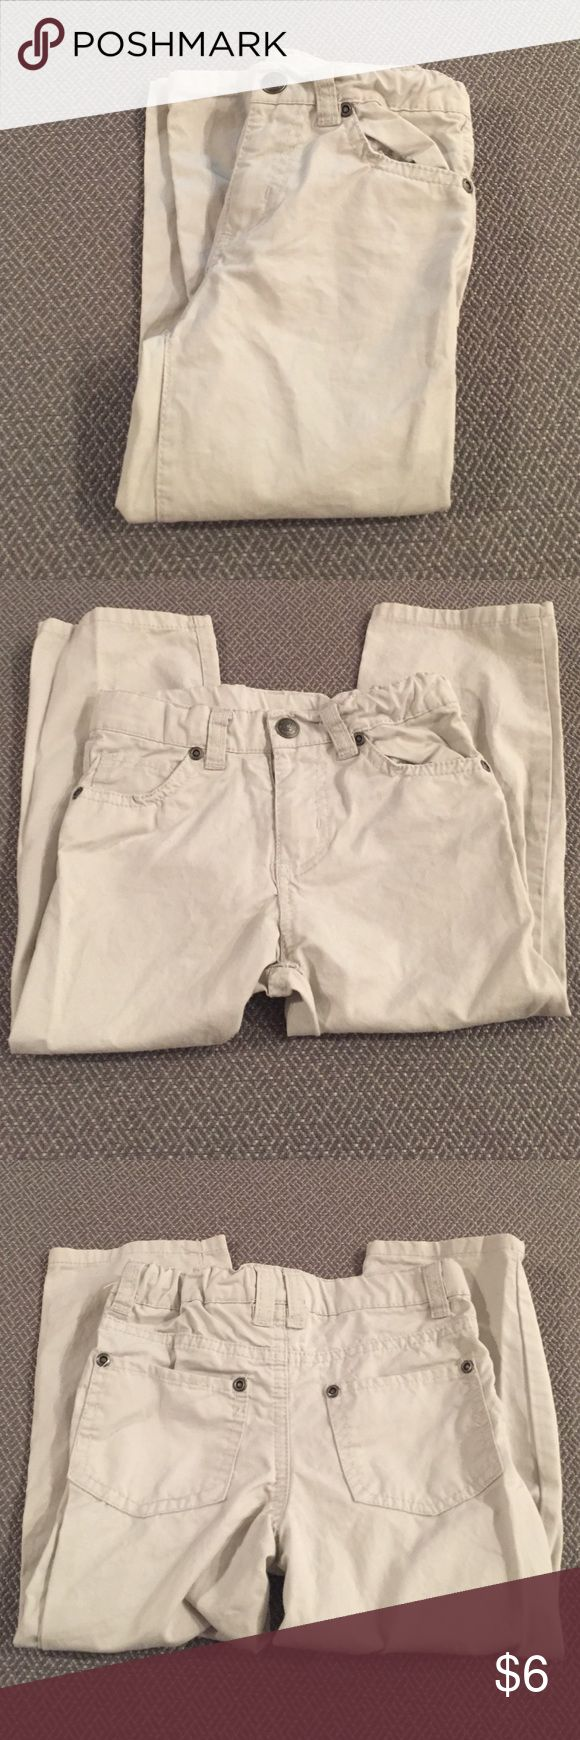 Boys Kaki Pants Boys tan kaki pants with an adjustable waist. Gently used in great condition KIDS R US  Bottoms Jeans